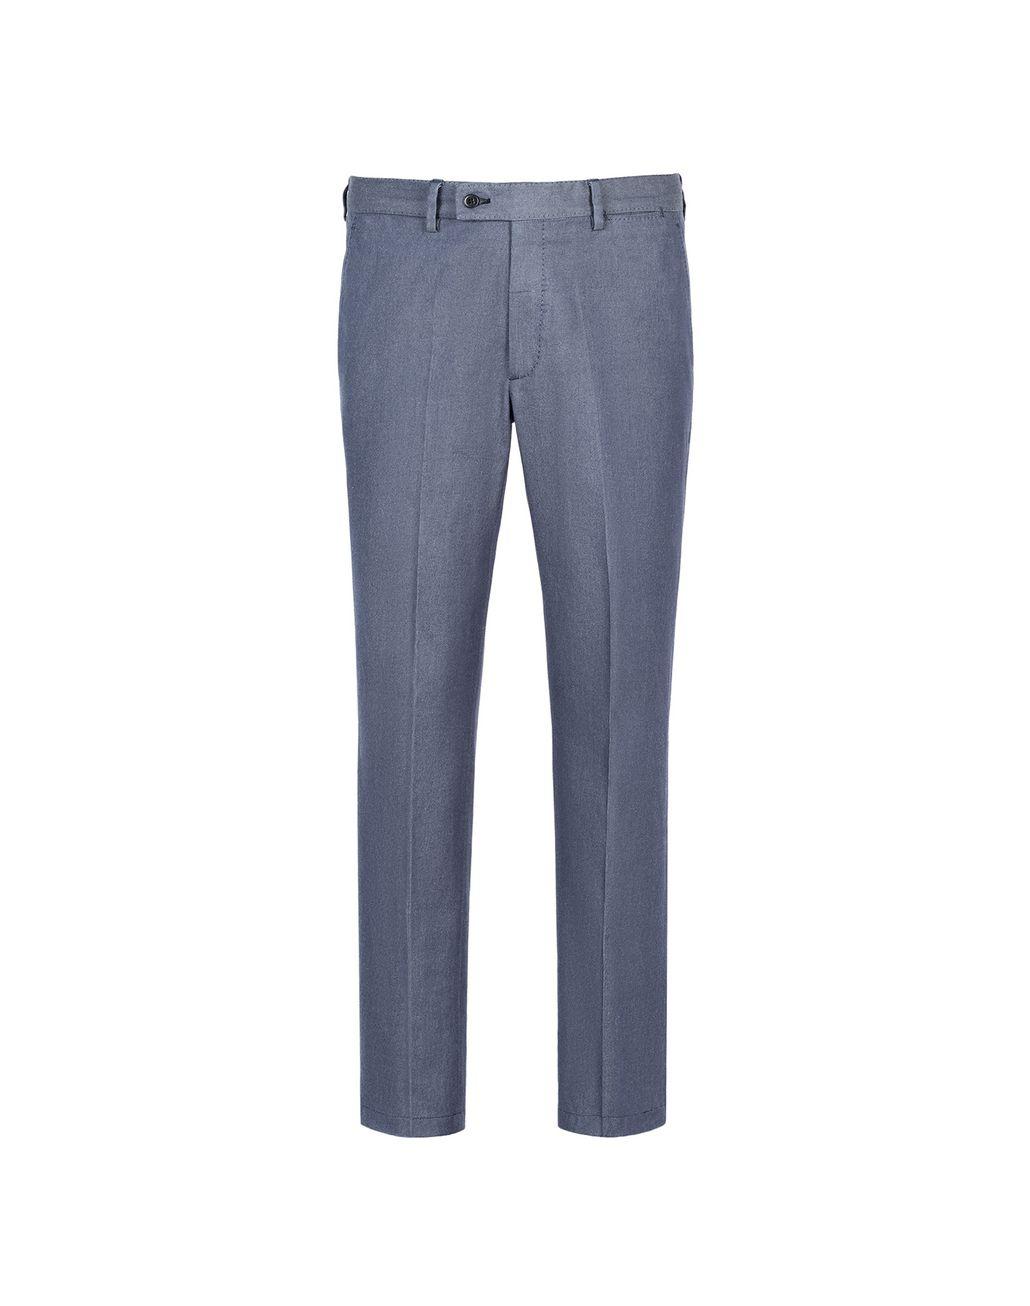 BRIONI Denim Blue Tignes Chino Trousers Trousers [*** pickupInStoreShippingNotGuaranteed_info ***] f